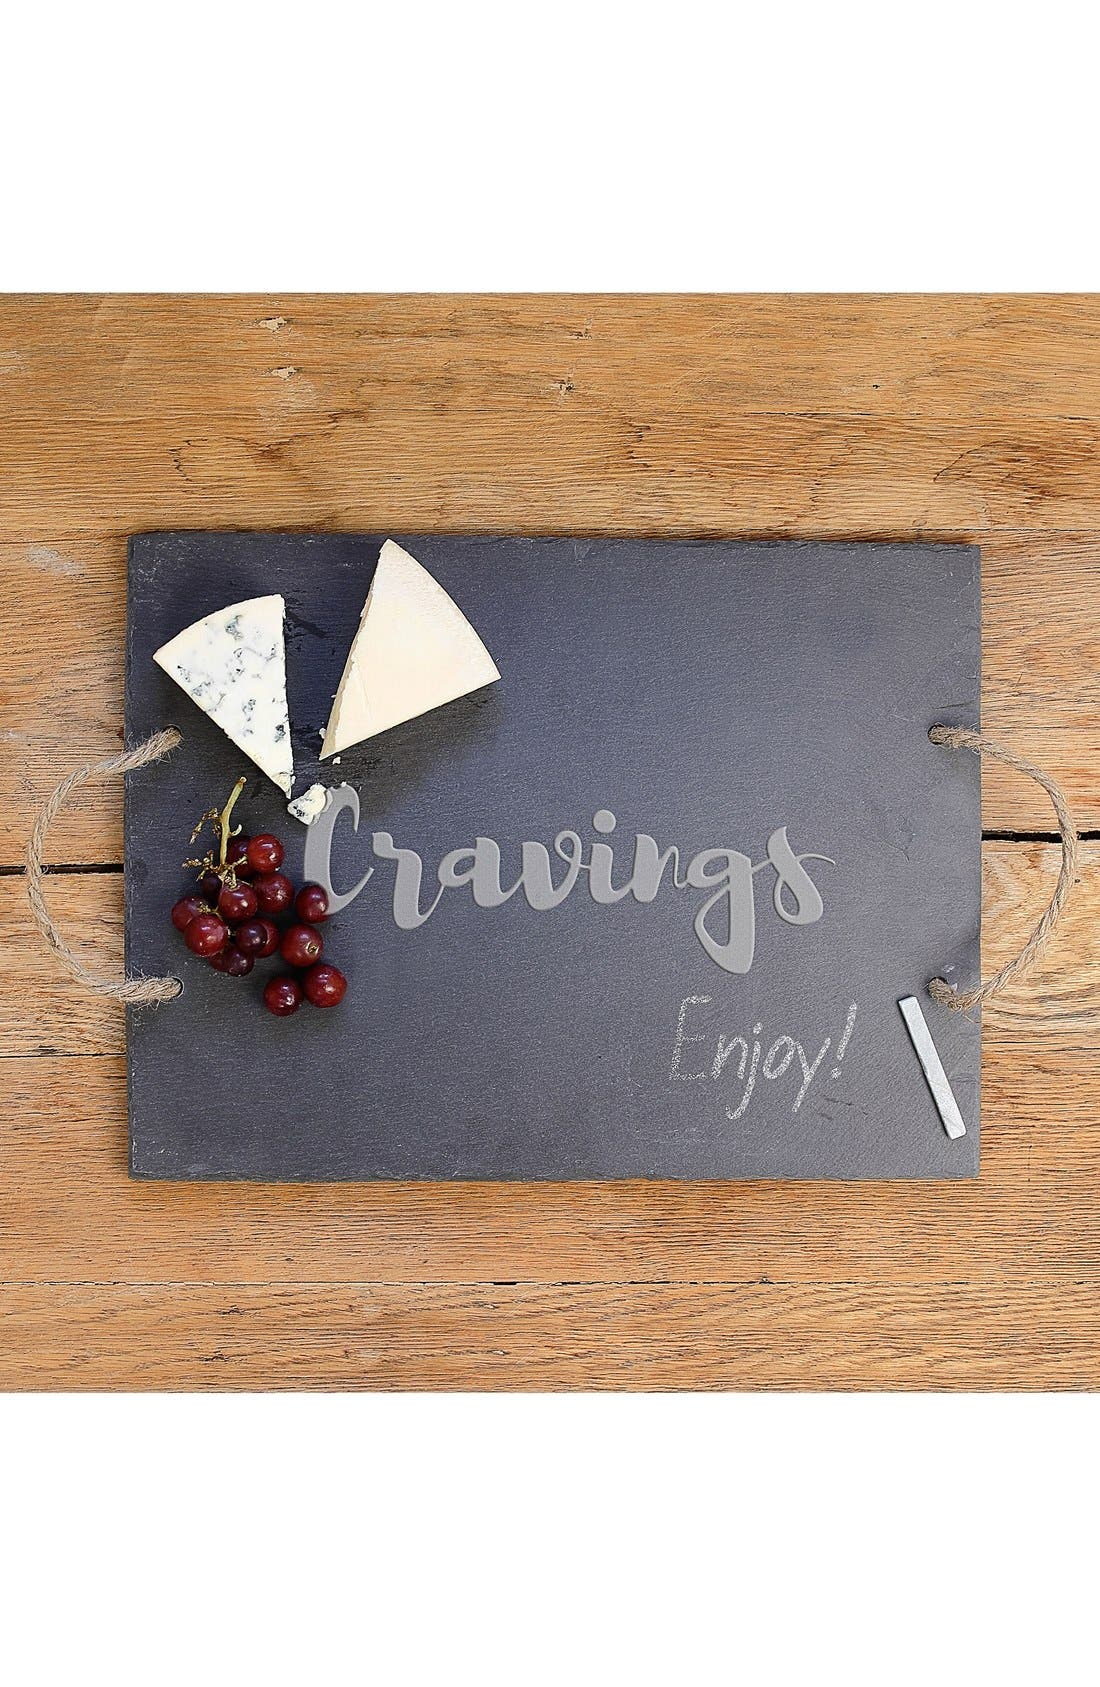 Alternate Image 3  - Cathy's Concepts 'Cravings' Slate Serving Board